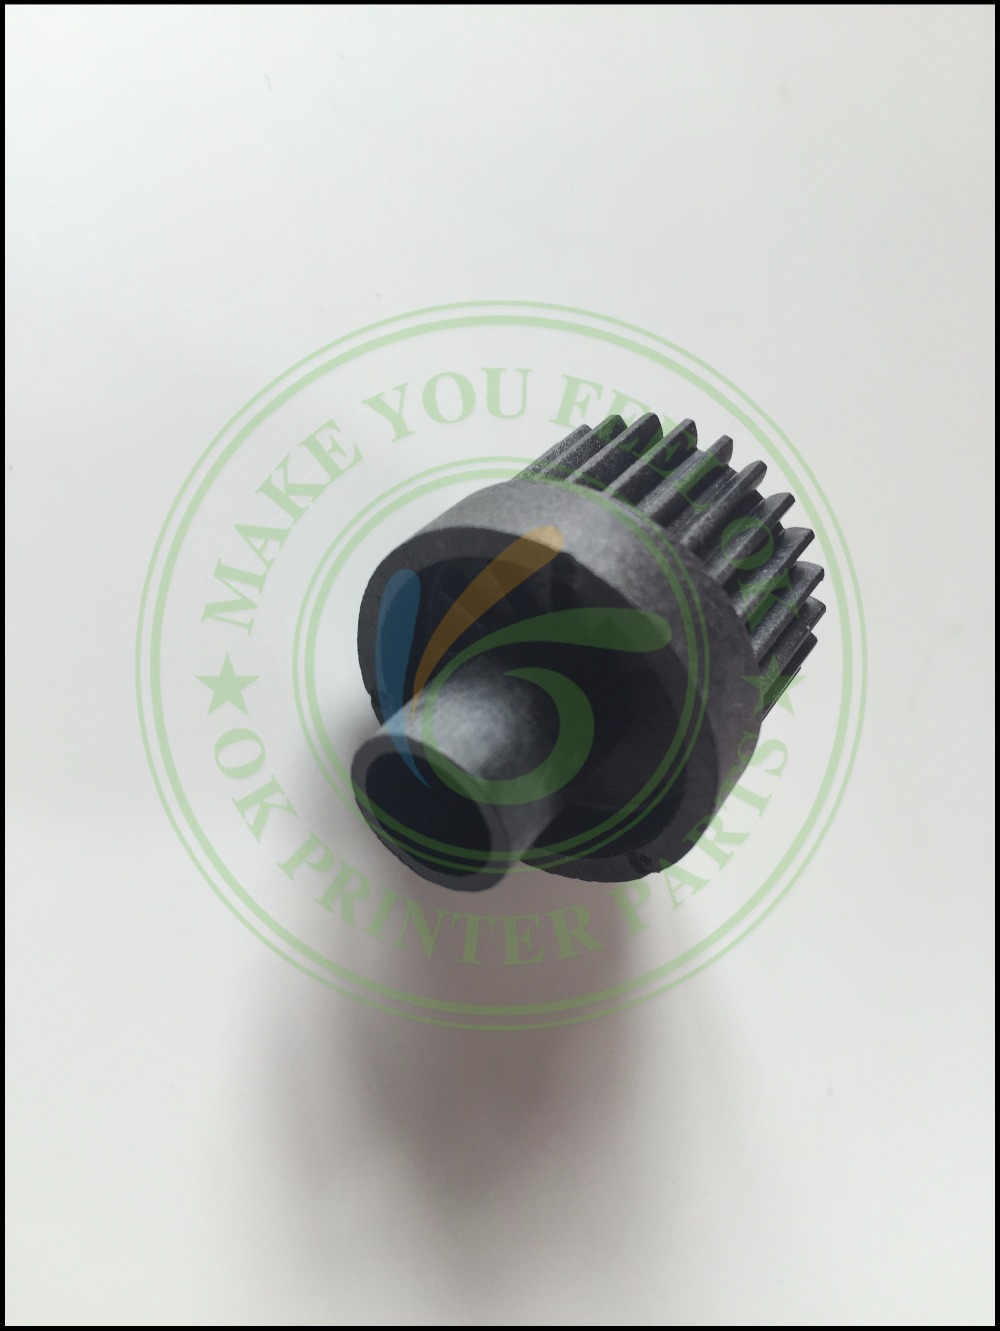 ORIGINAL NEW JC66-01202A Fuser Inner Drive Gear For Samsung ML1915 ML2525 ML2580 ML2540 ML2545 SCX4200 SCX4300 SCX4600 SCX4623